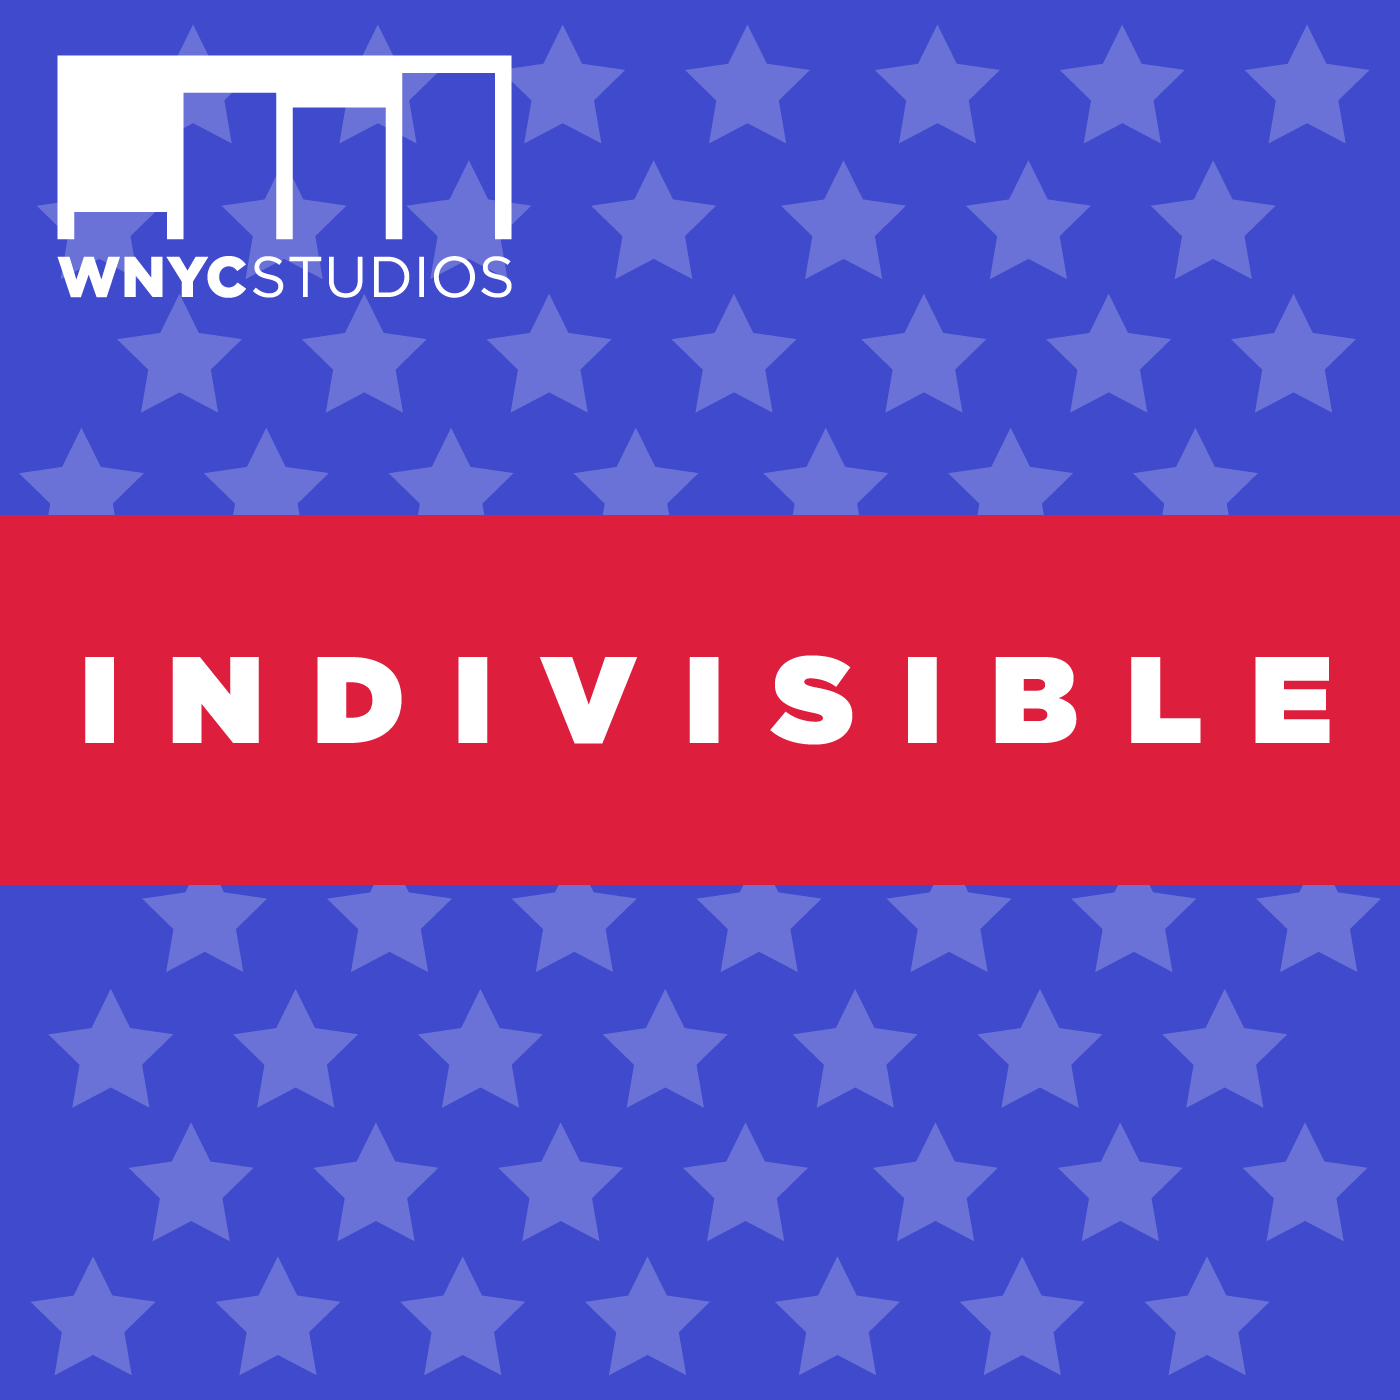 Indivisible World, The first 100 days, Programming